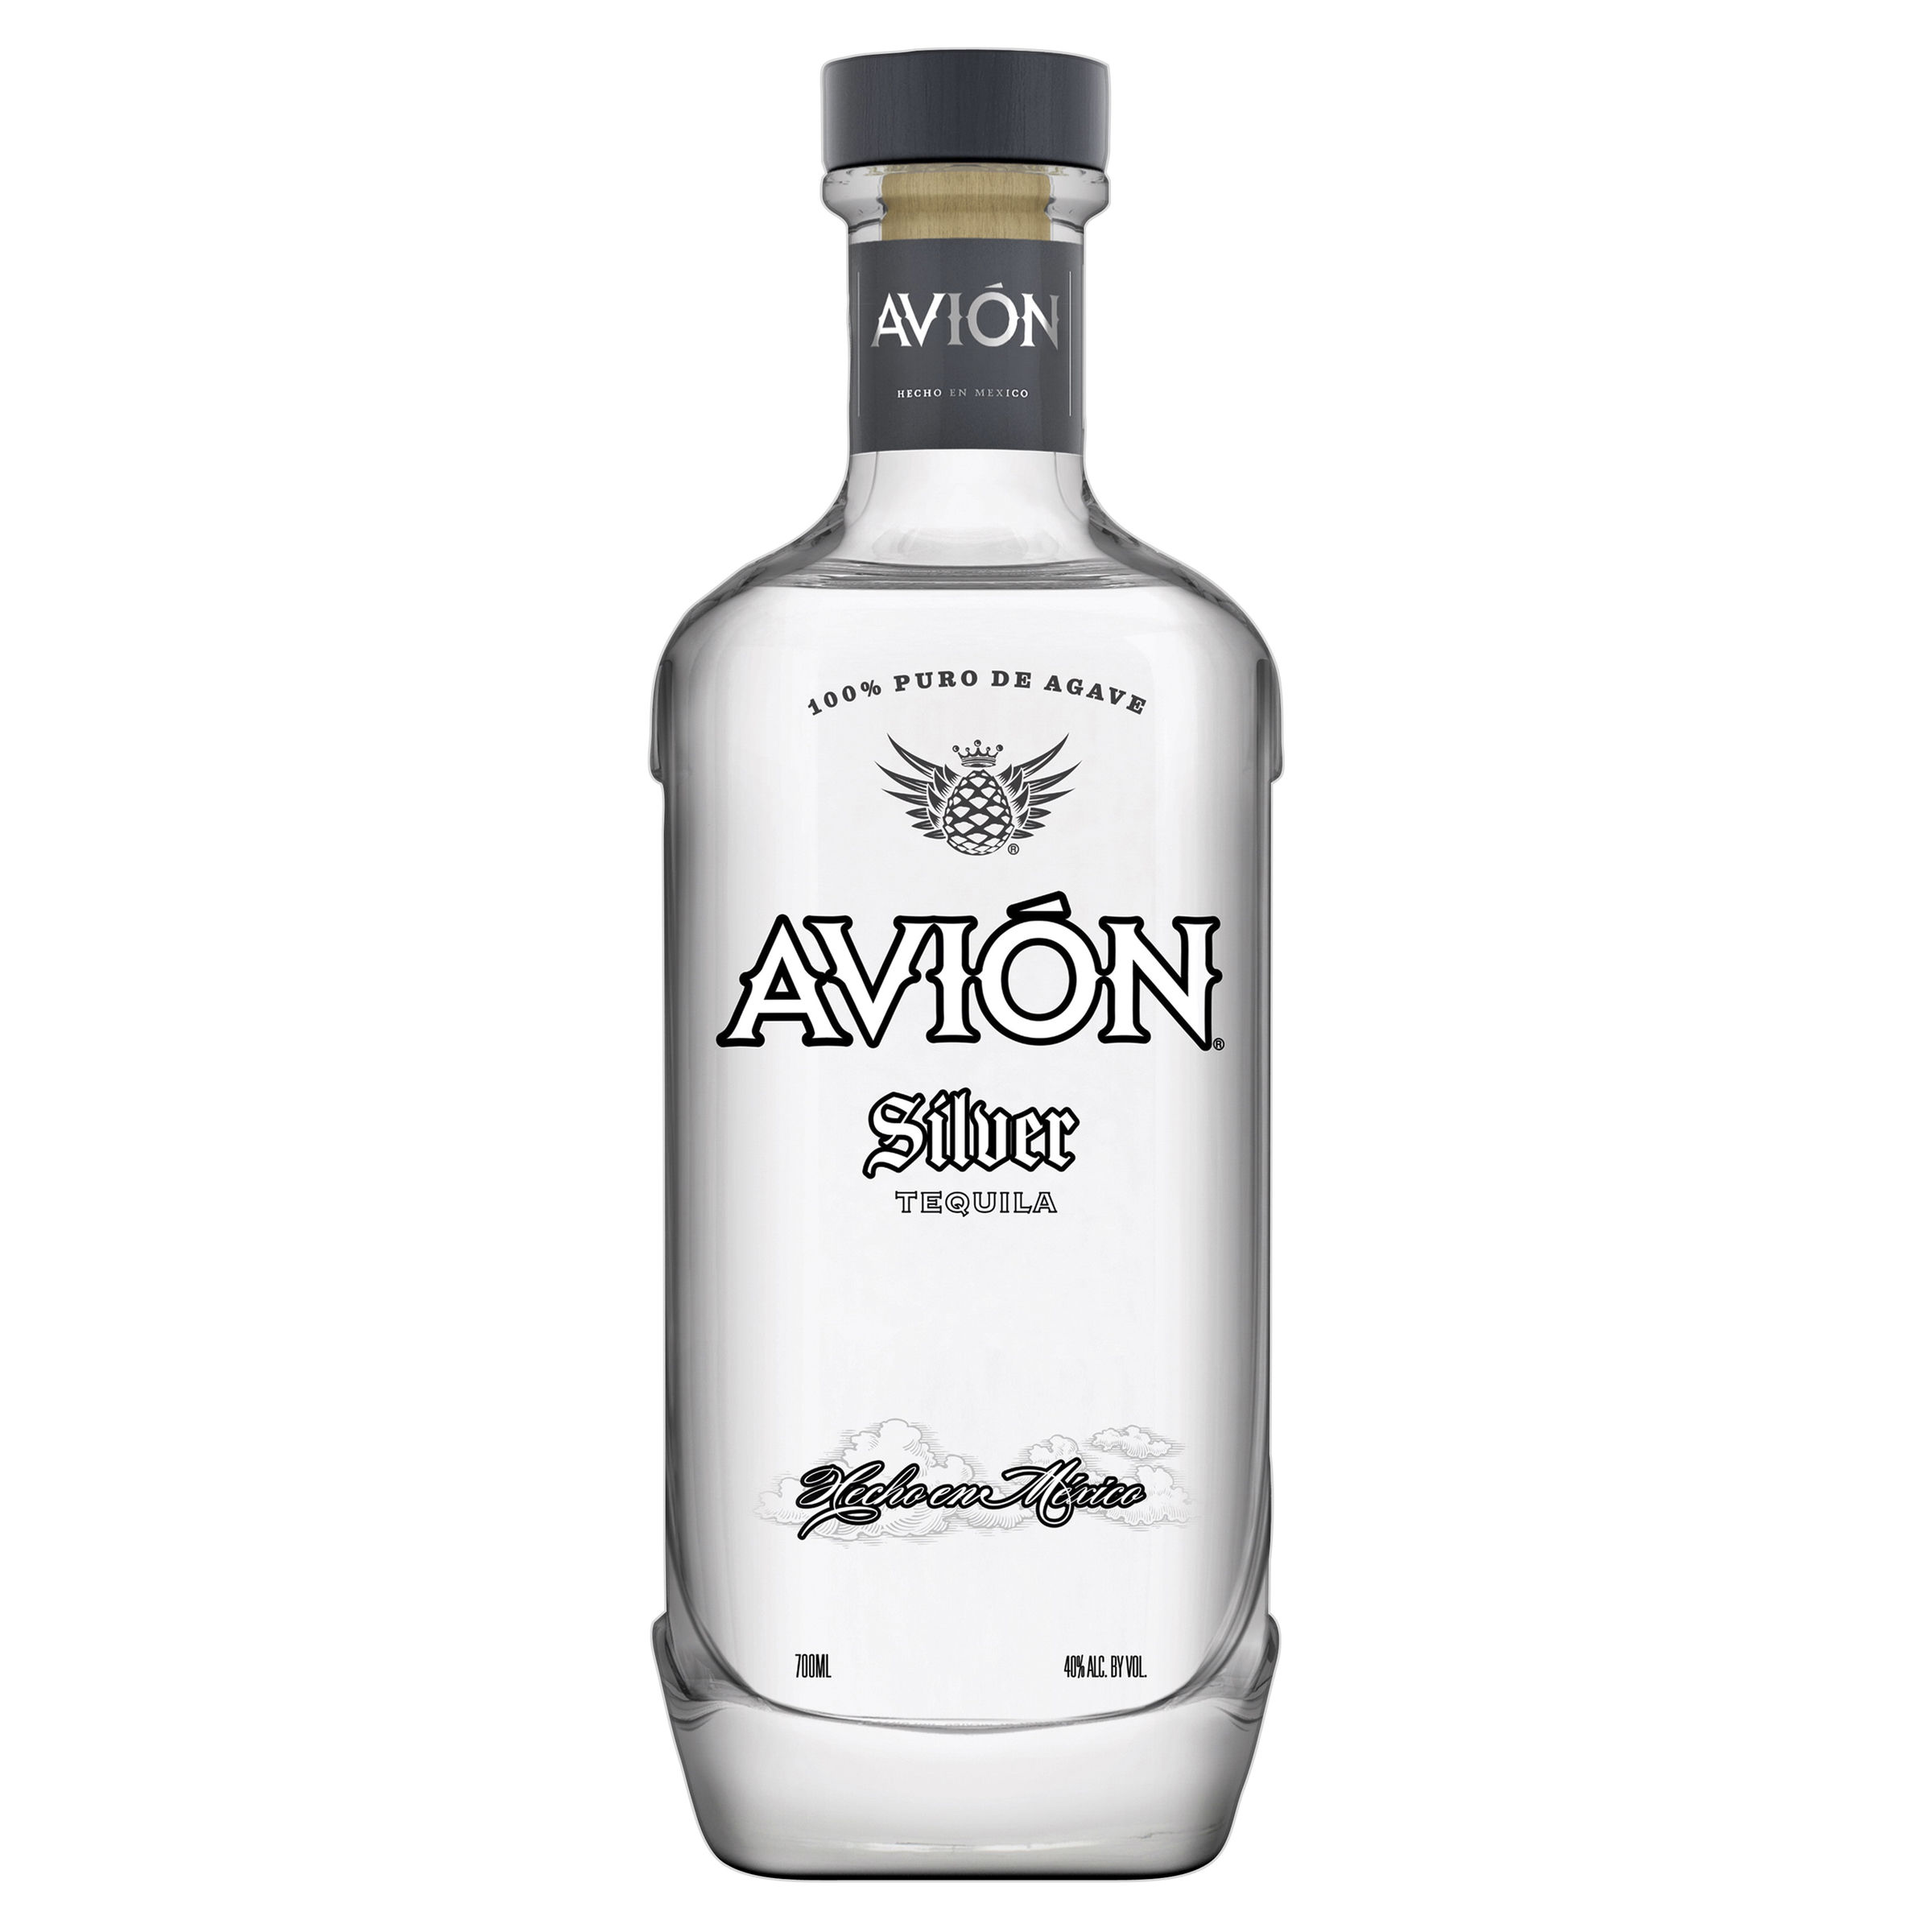 AVION SILVER TEQUILA